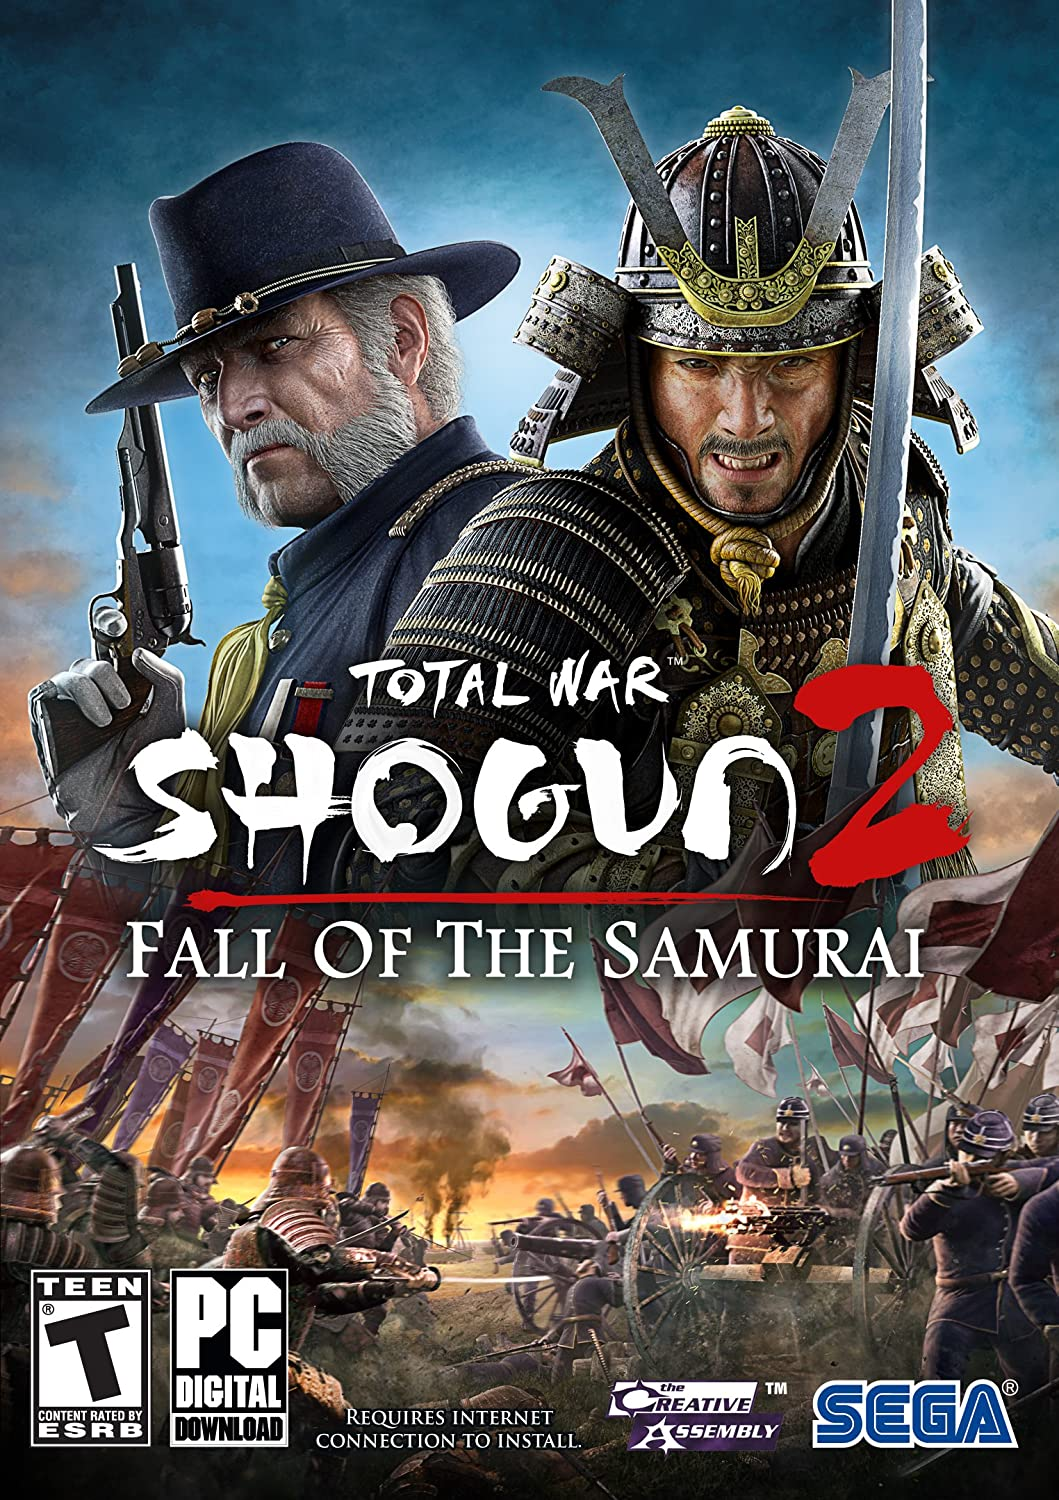 Amazon.com: Total War: Shogun 2 - Fall of the Samurai ...